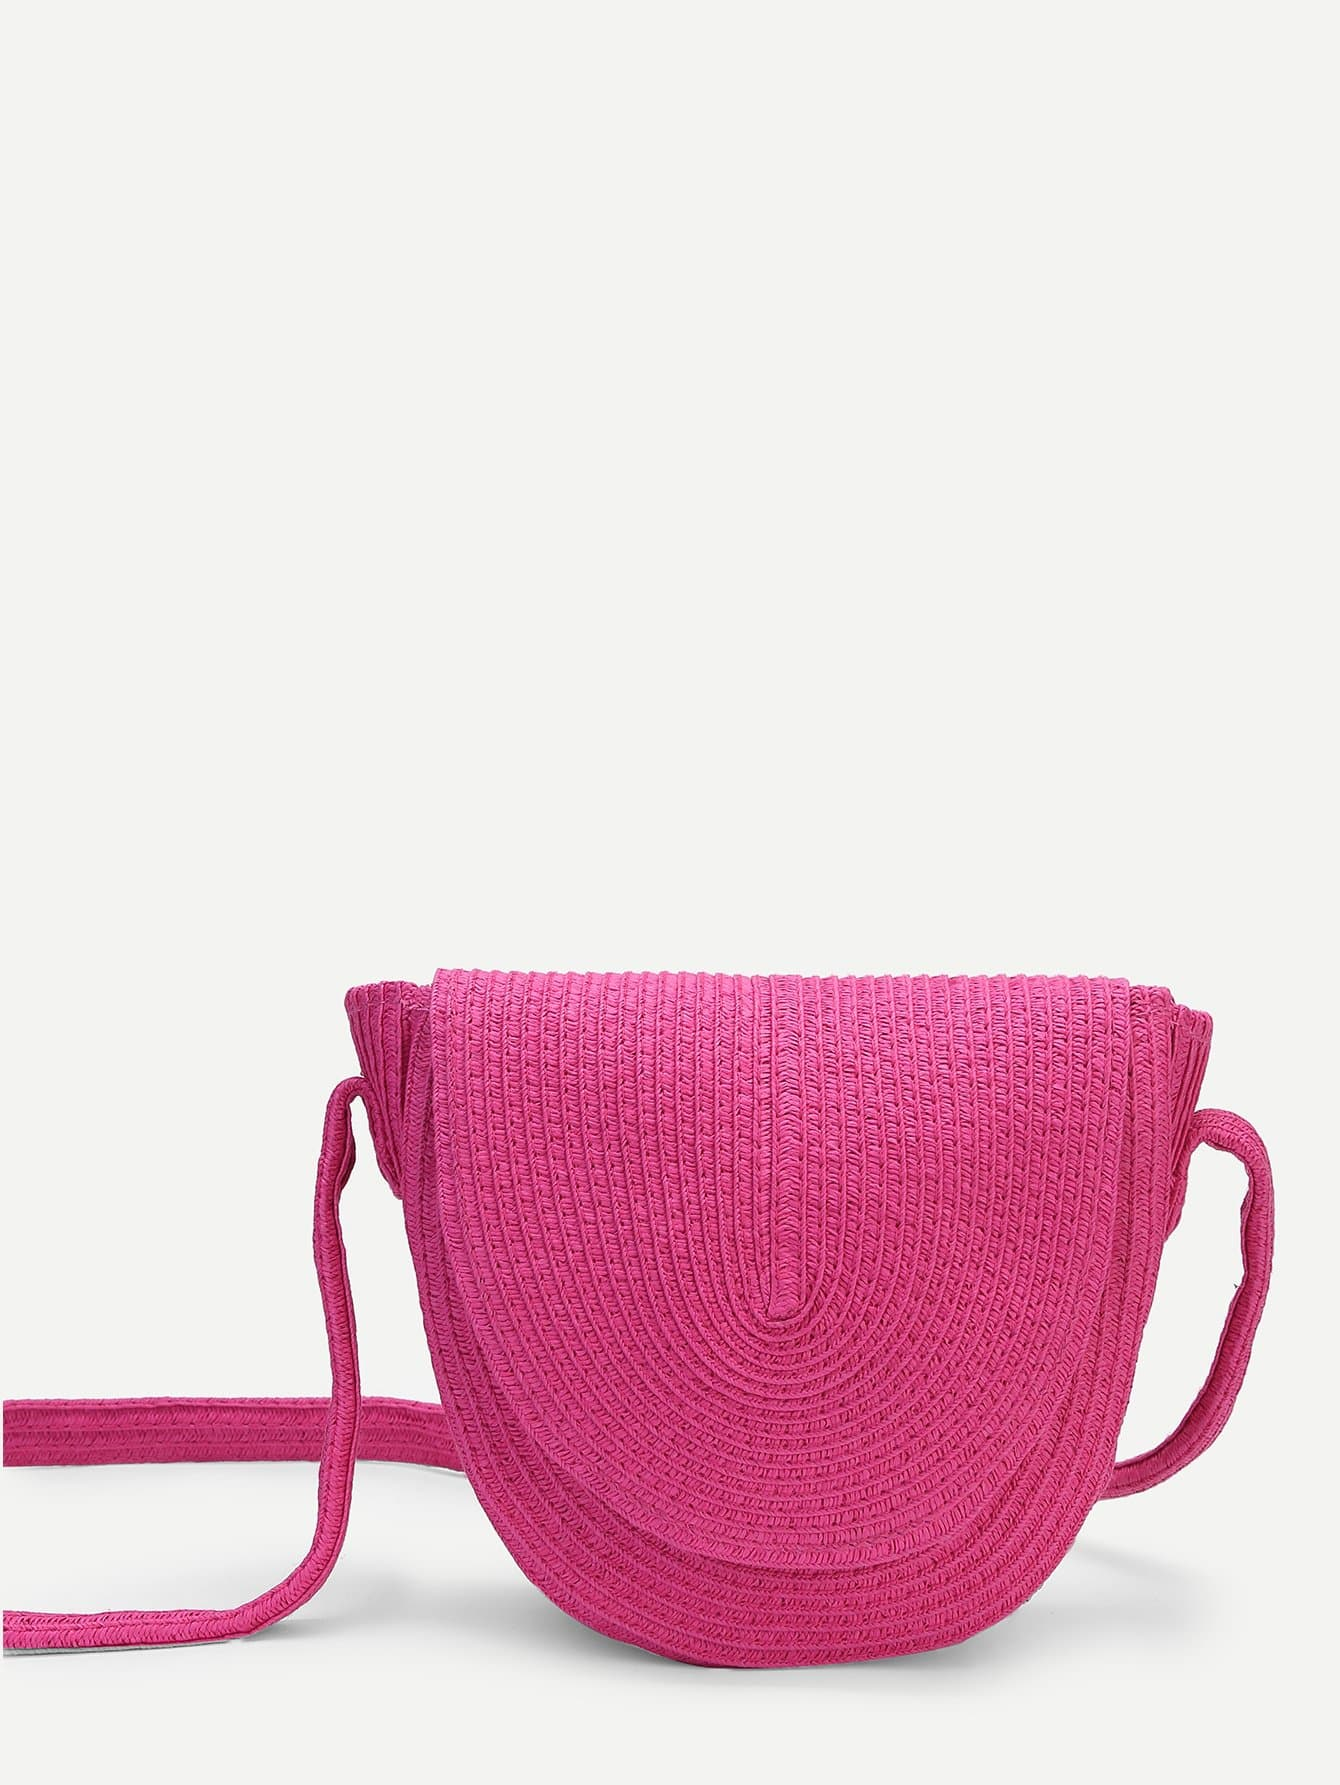 Curved Straw Flap Bag